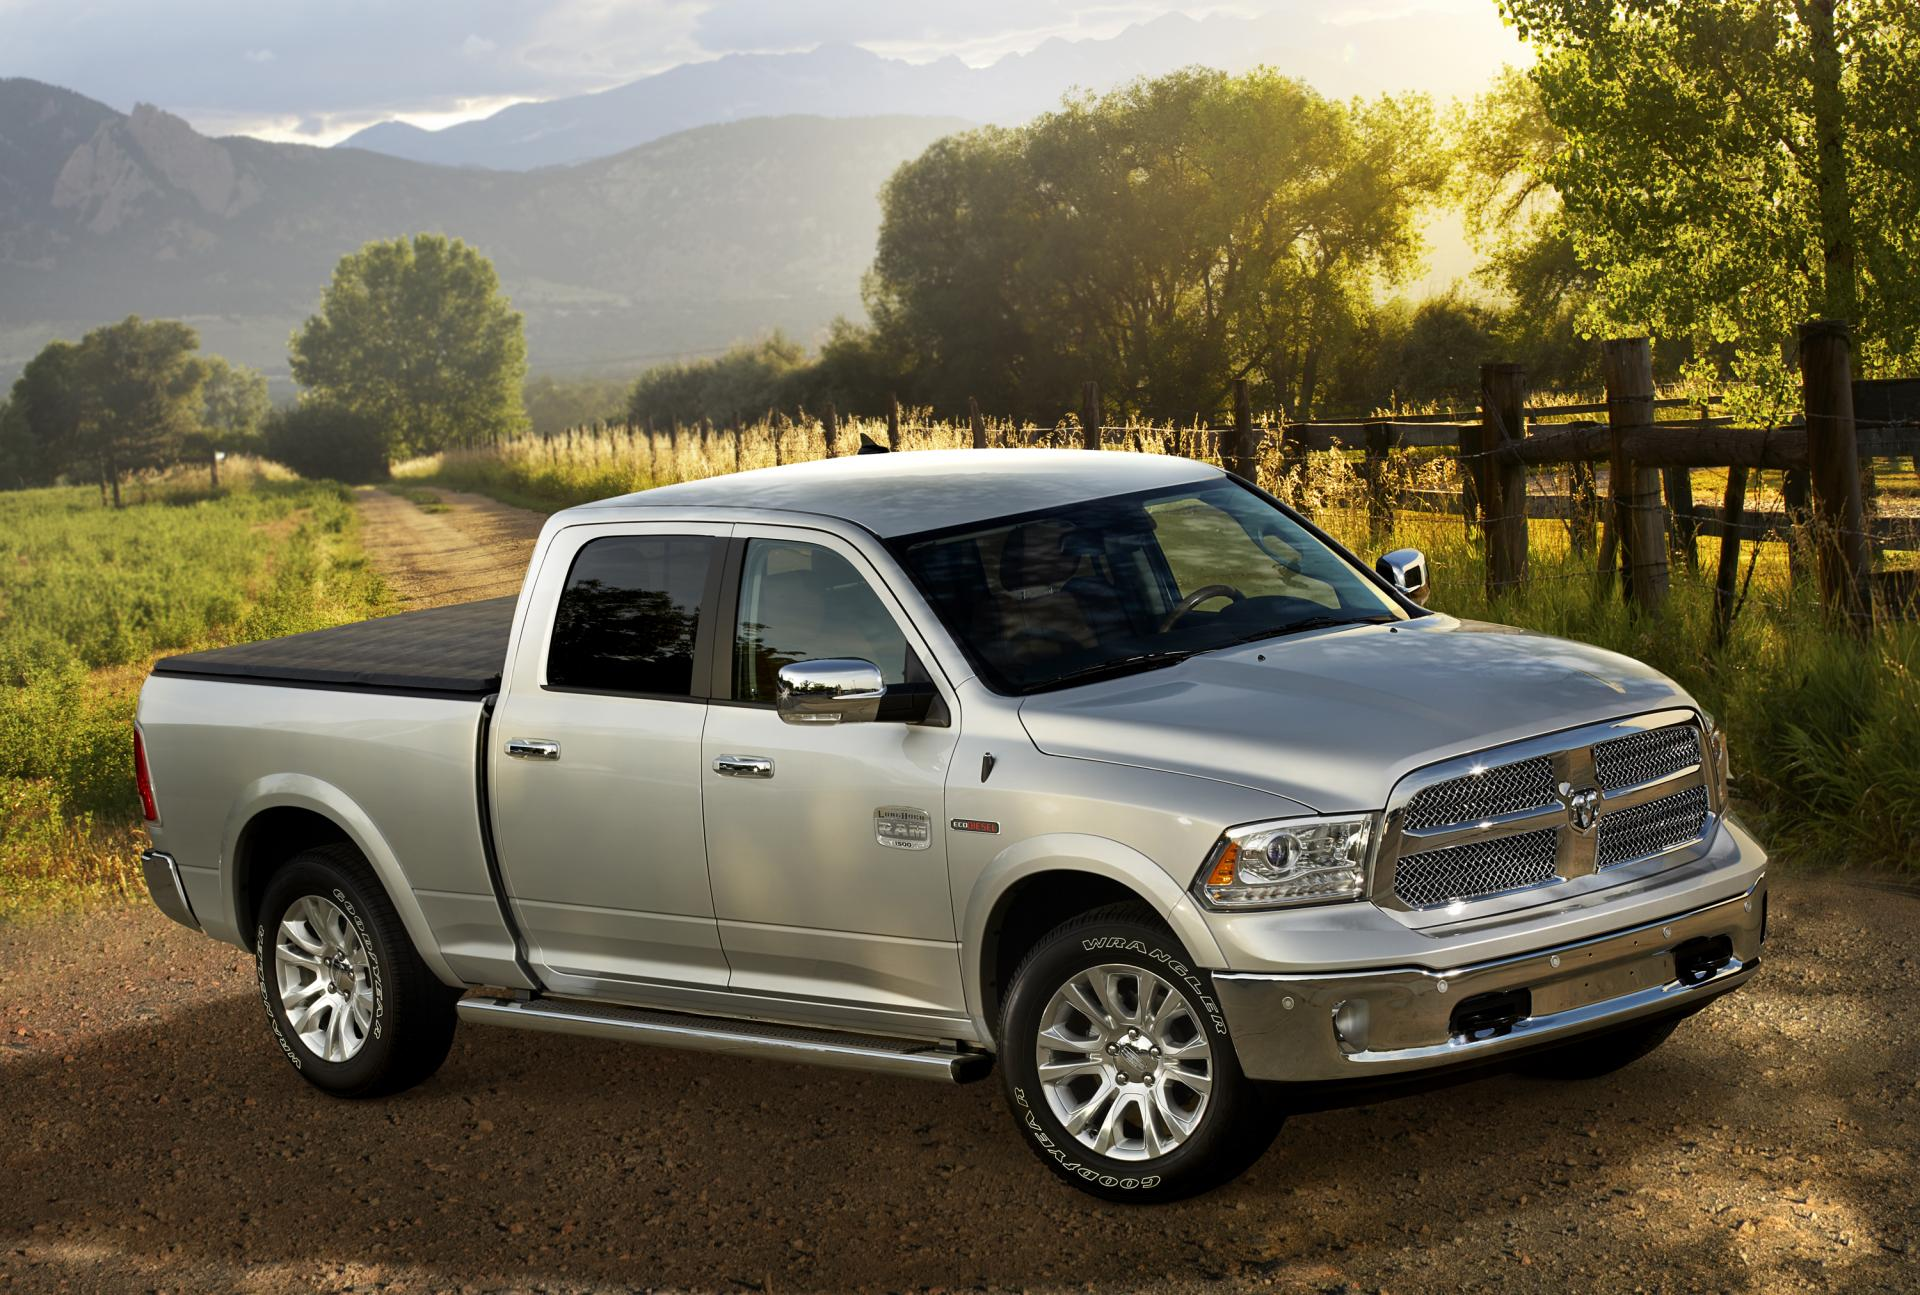 2014 Ram Heavy Duty News And Information 2013 Dodge 5500 Fuel Filter Location